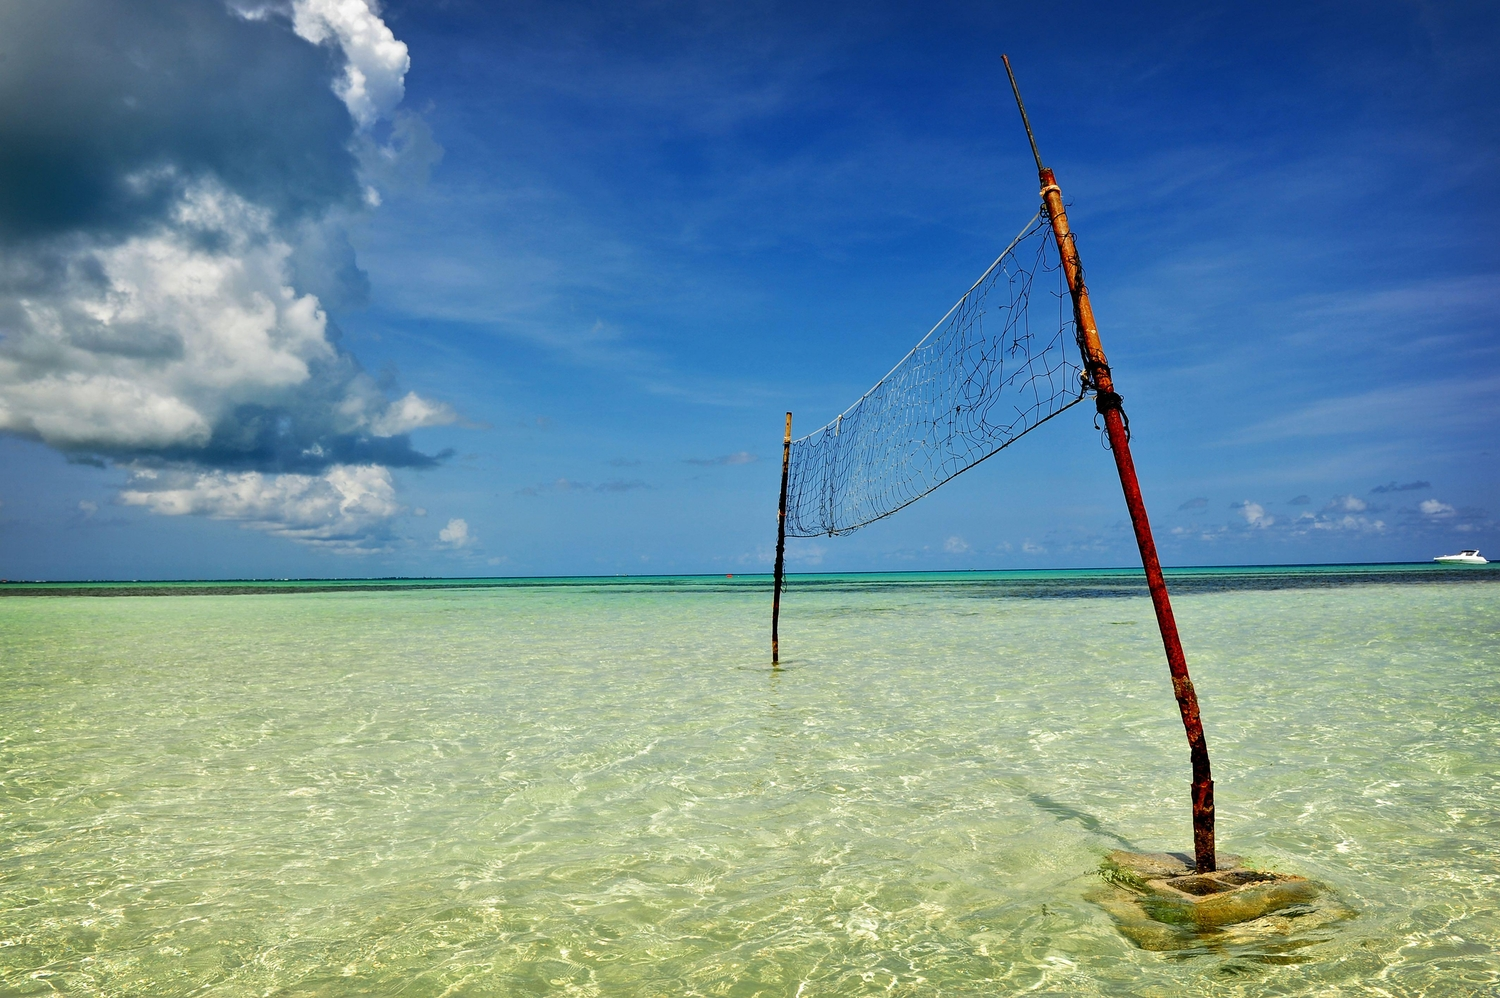 Beach volleyball net placed in the ocean